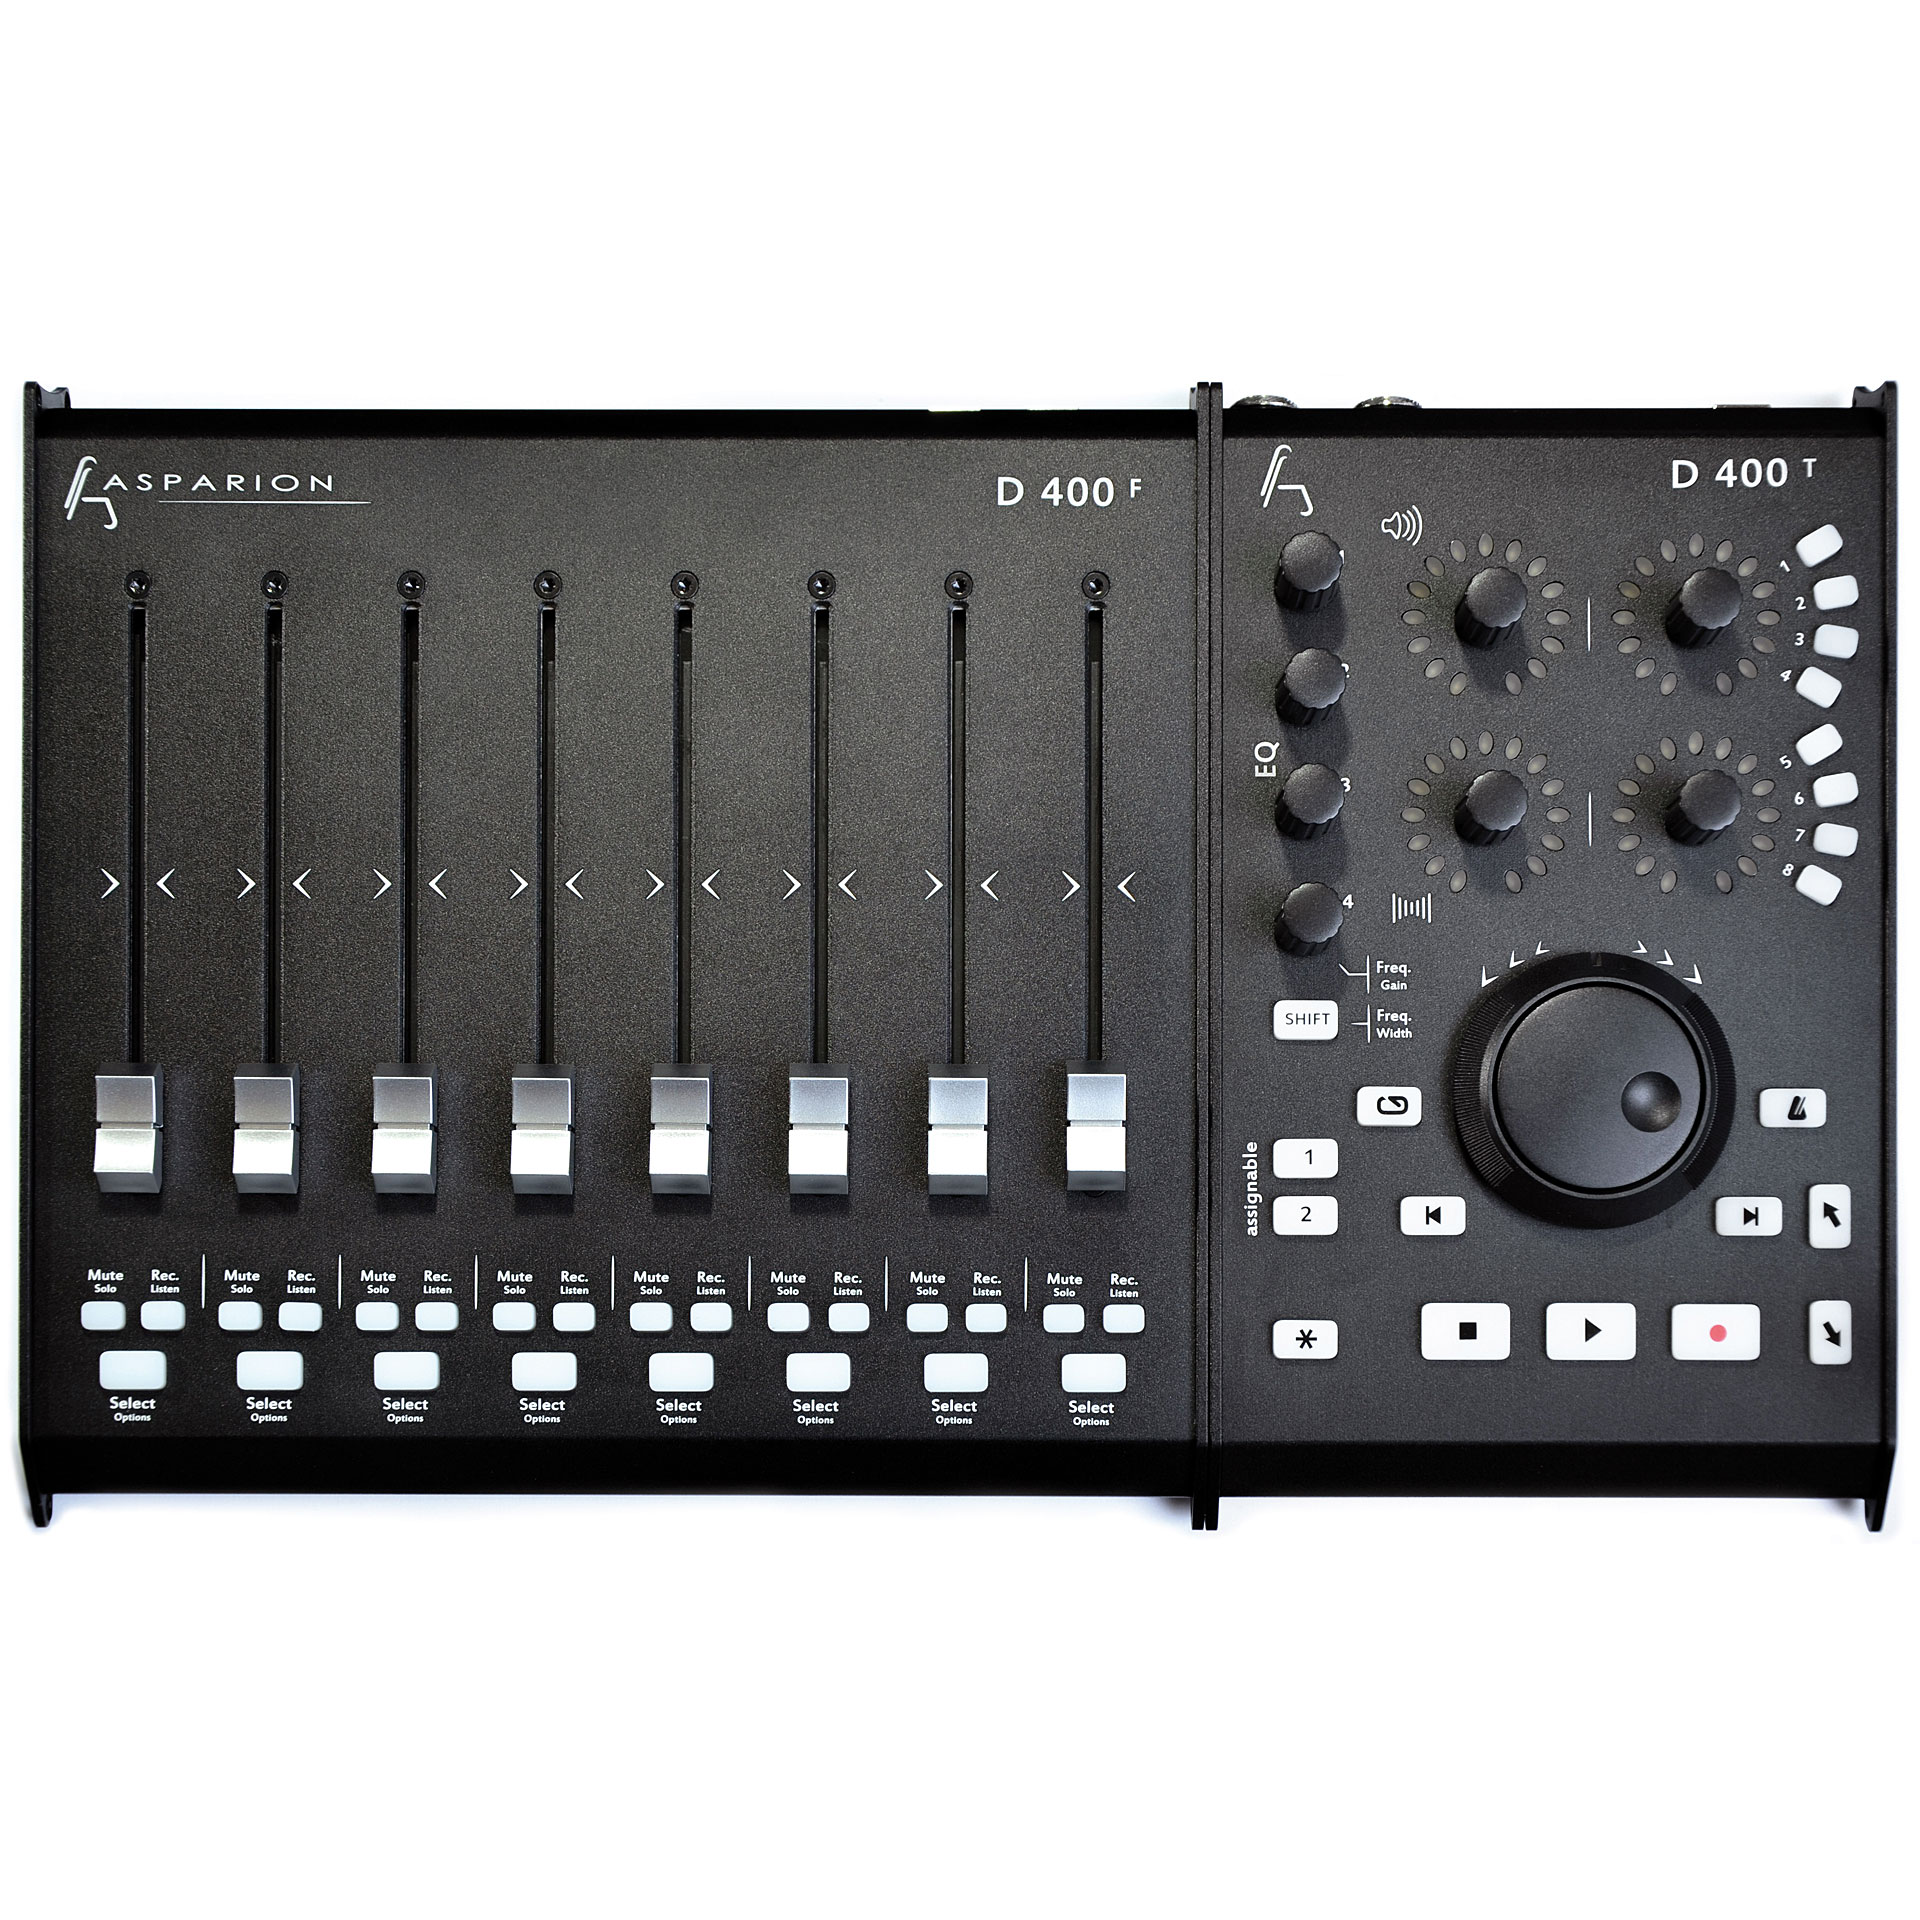 Asparion d400 bundle 10090048 midi controller for Daw control surface motorized faders